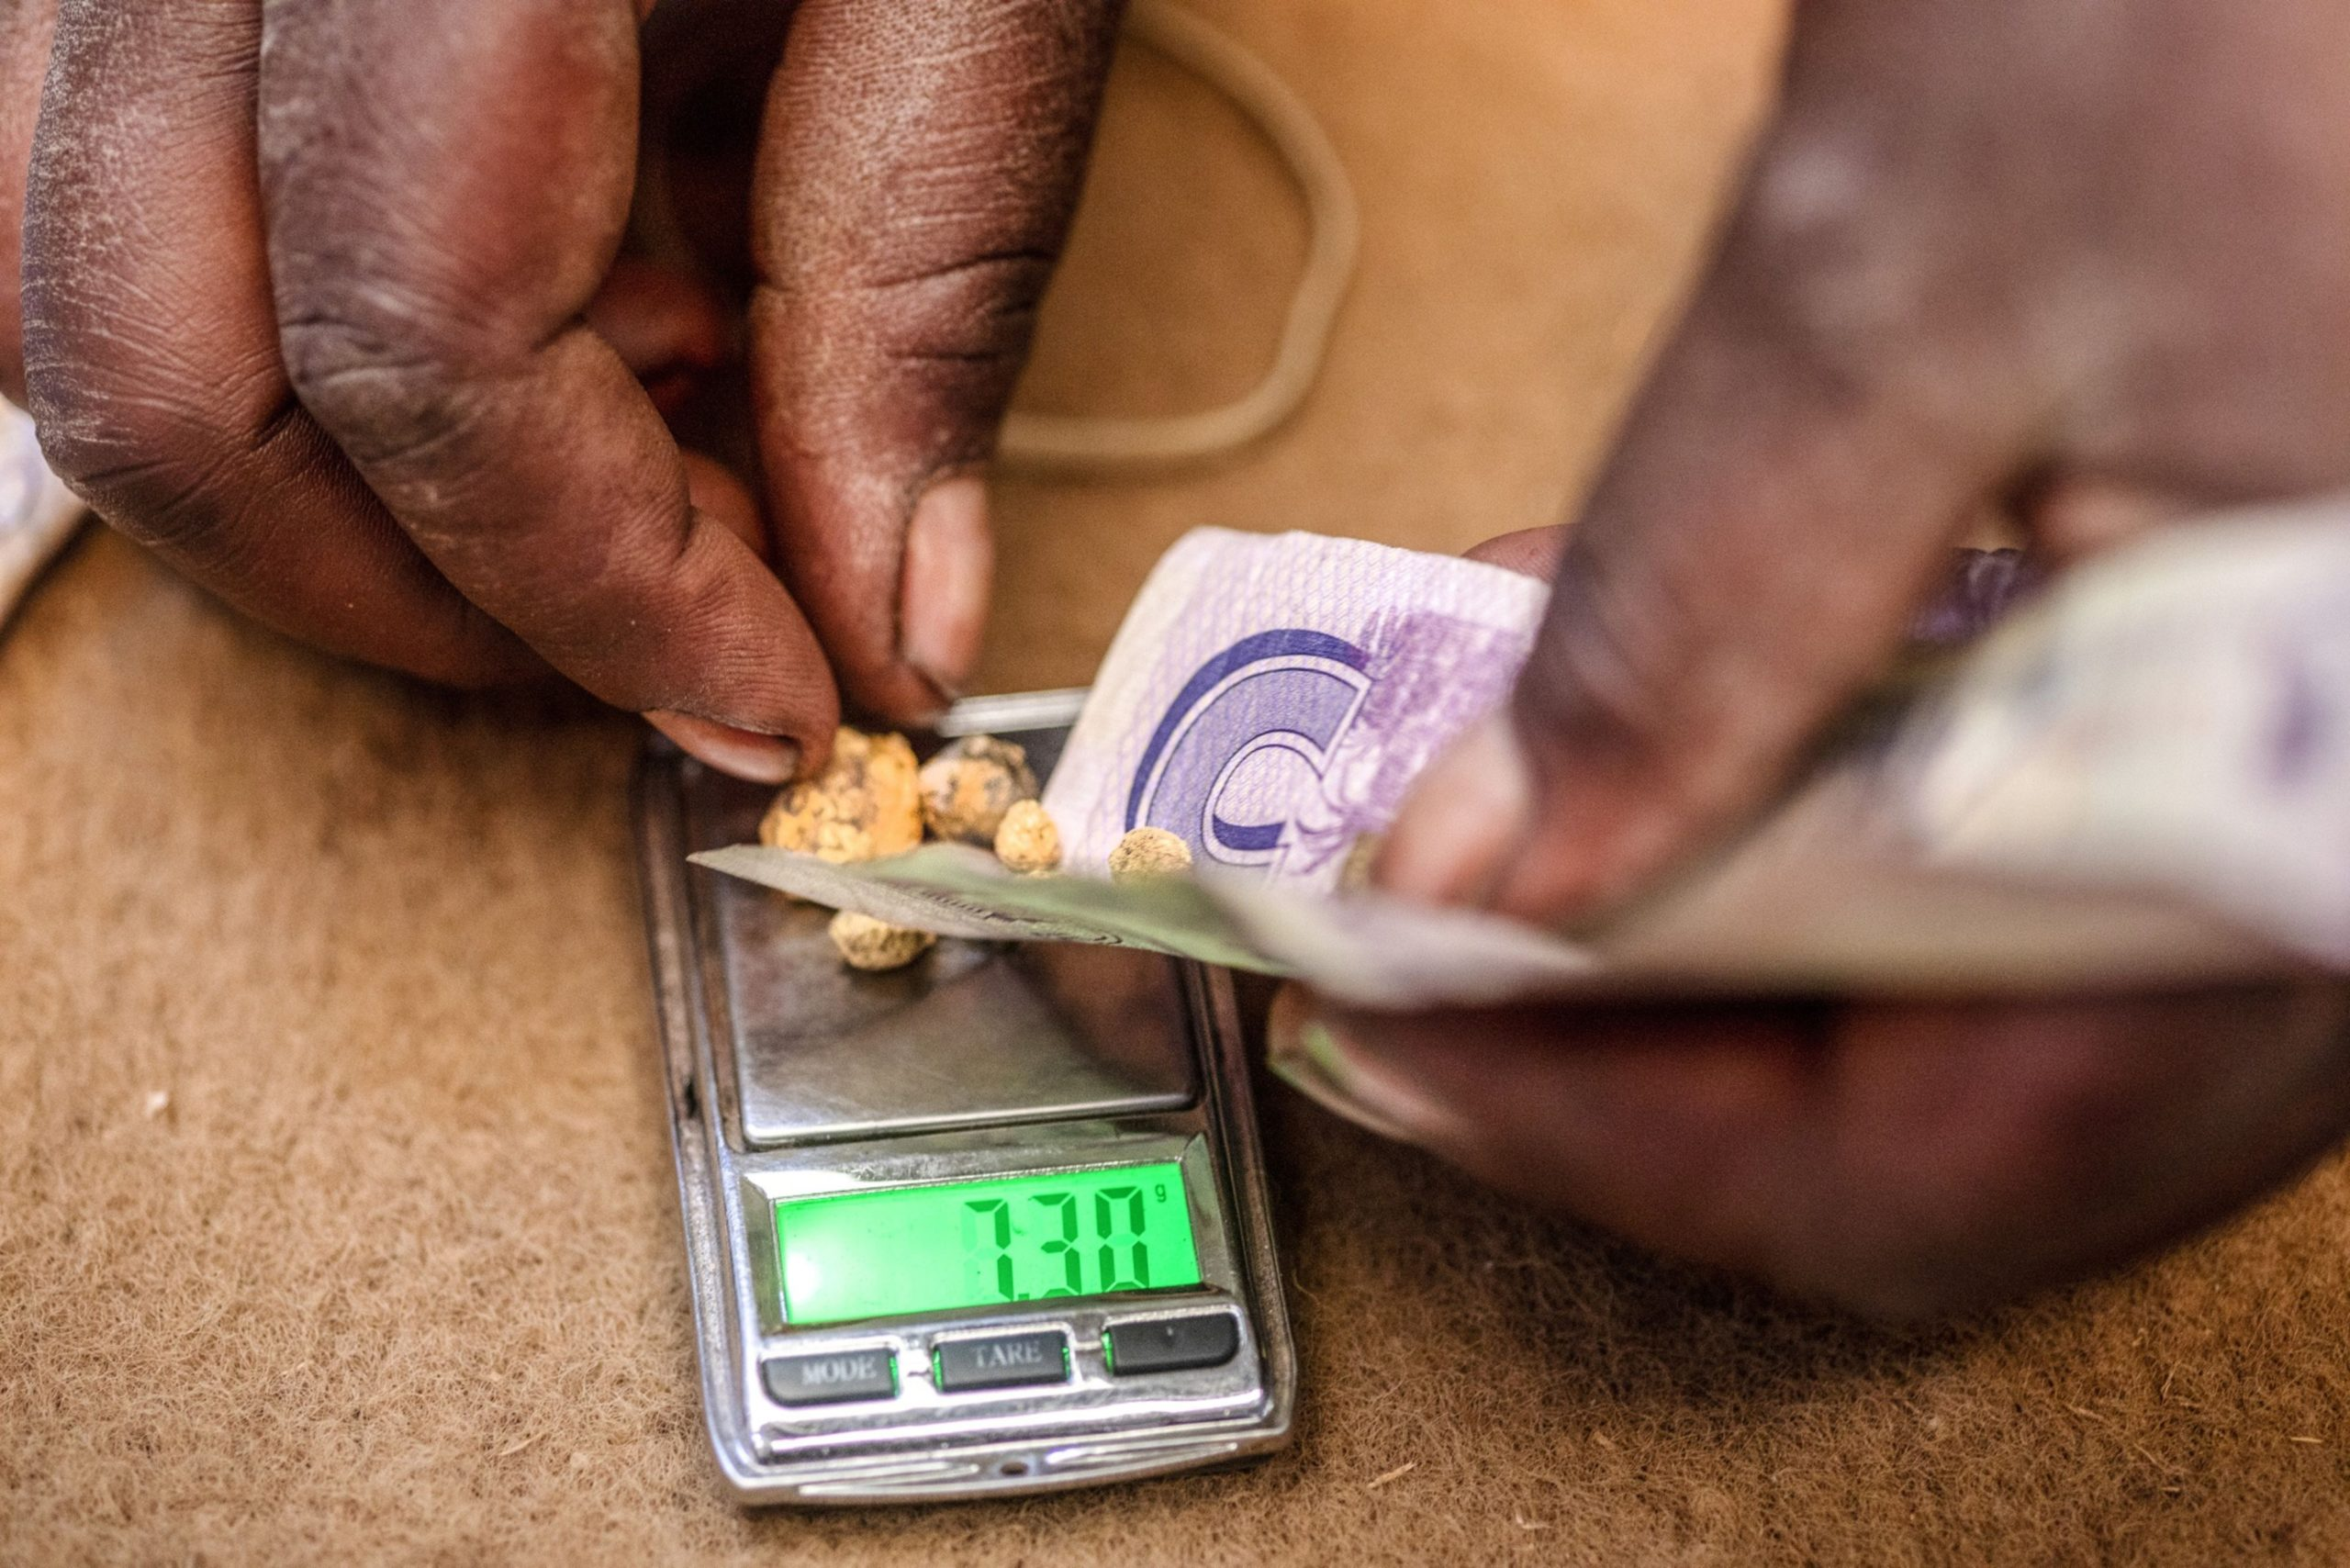 Zimbabwe is hemorrhaging gold. Can a key reform curb smuggling?